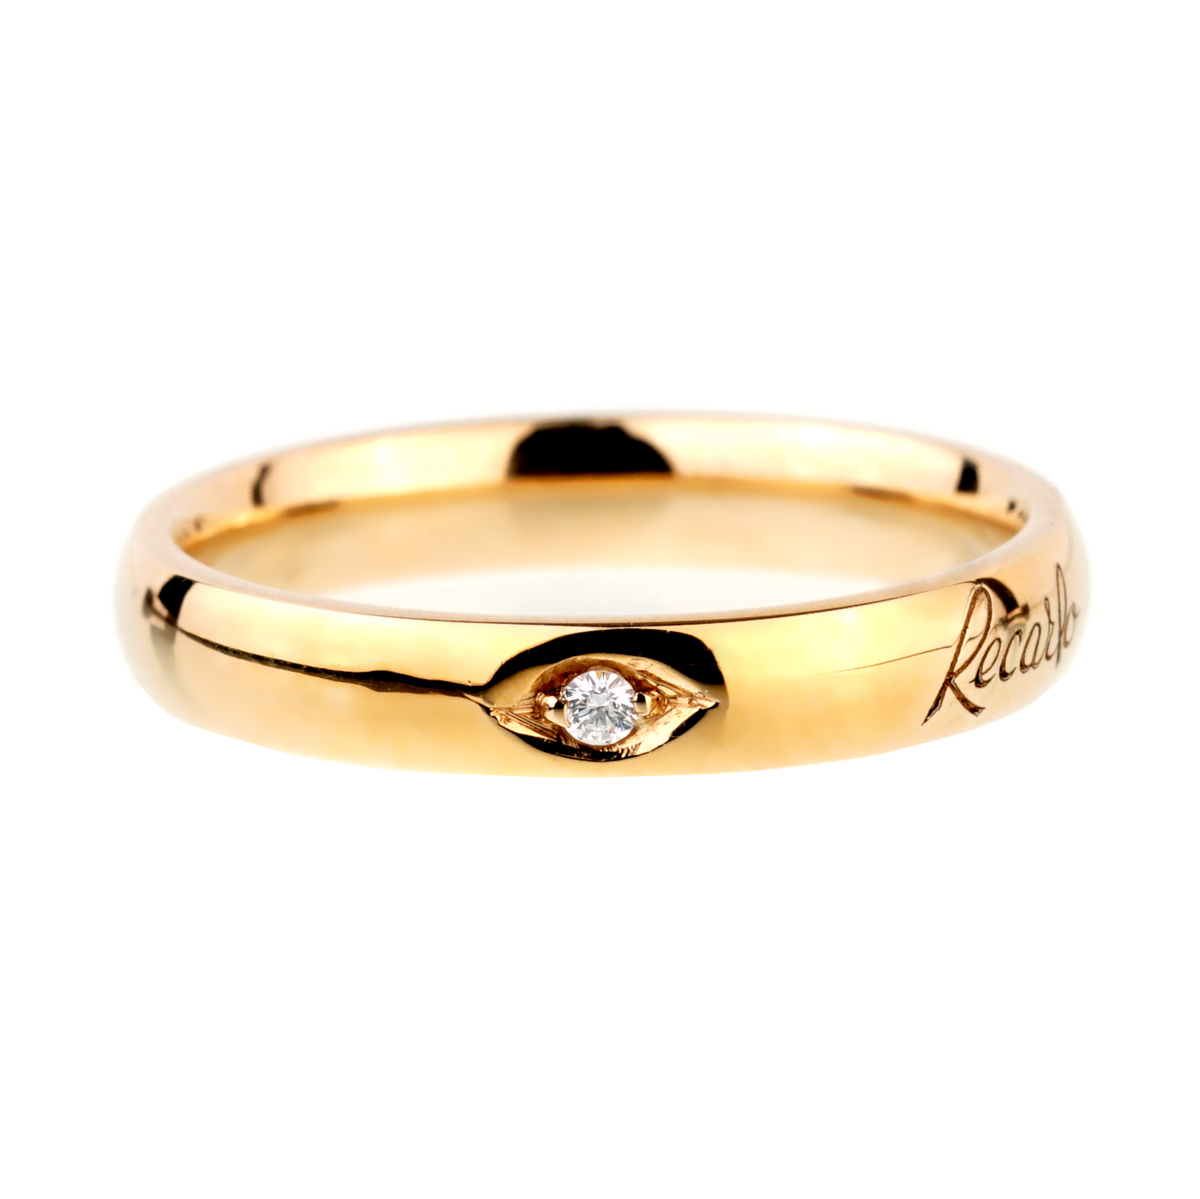 Recarlo Diamond Yellow Gold Band Ring - Recarlo Jewelry